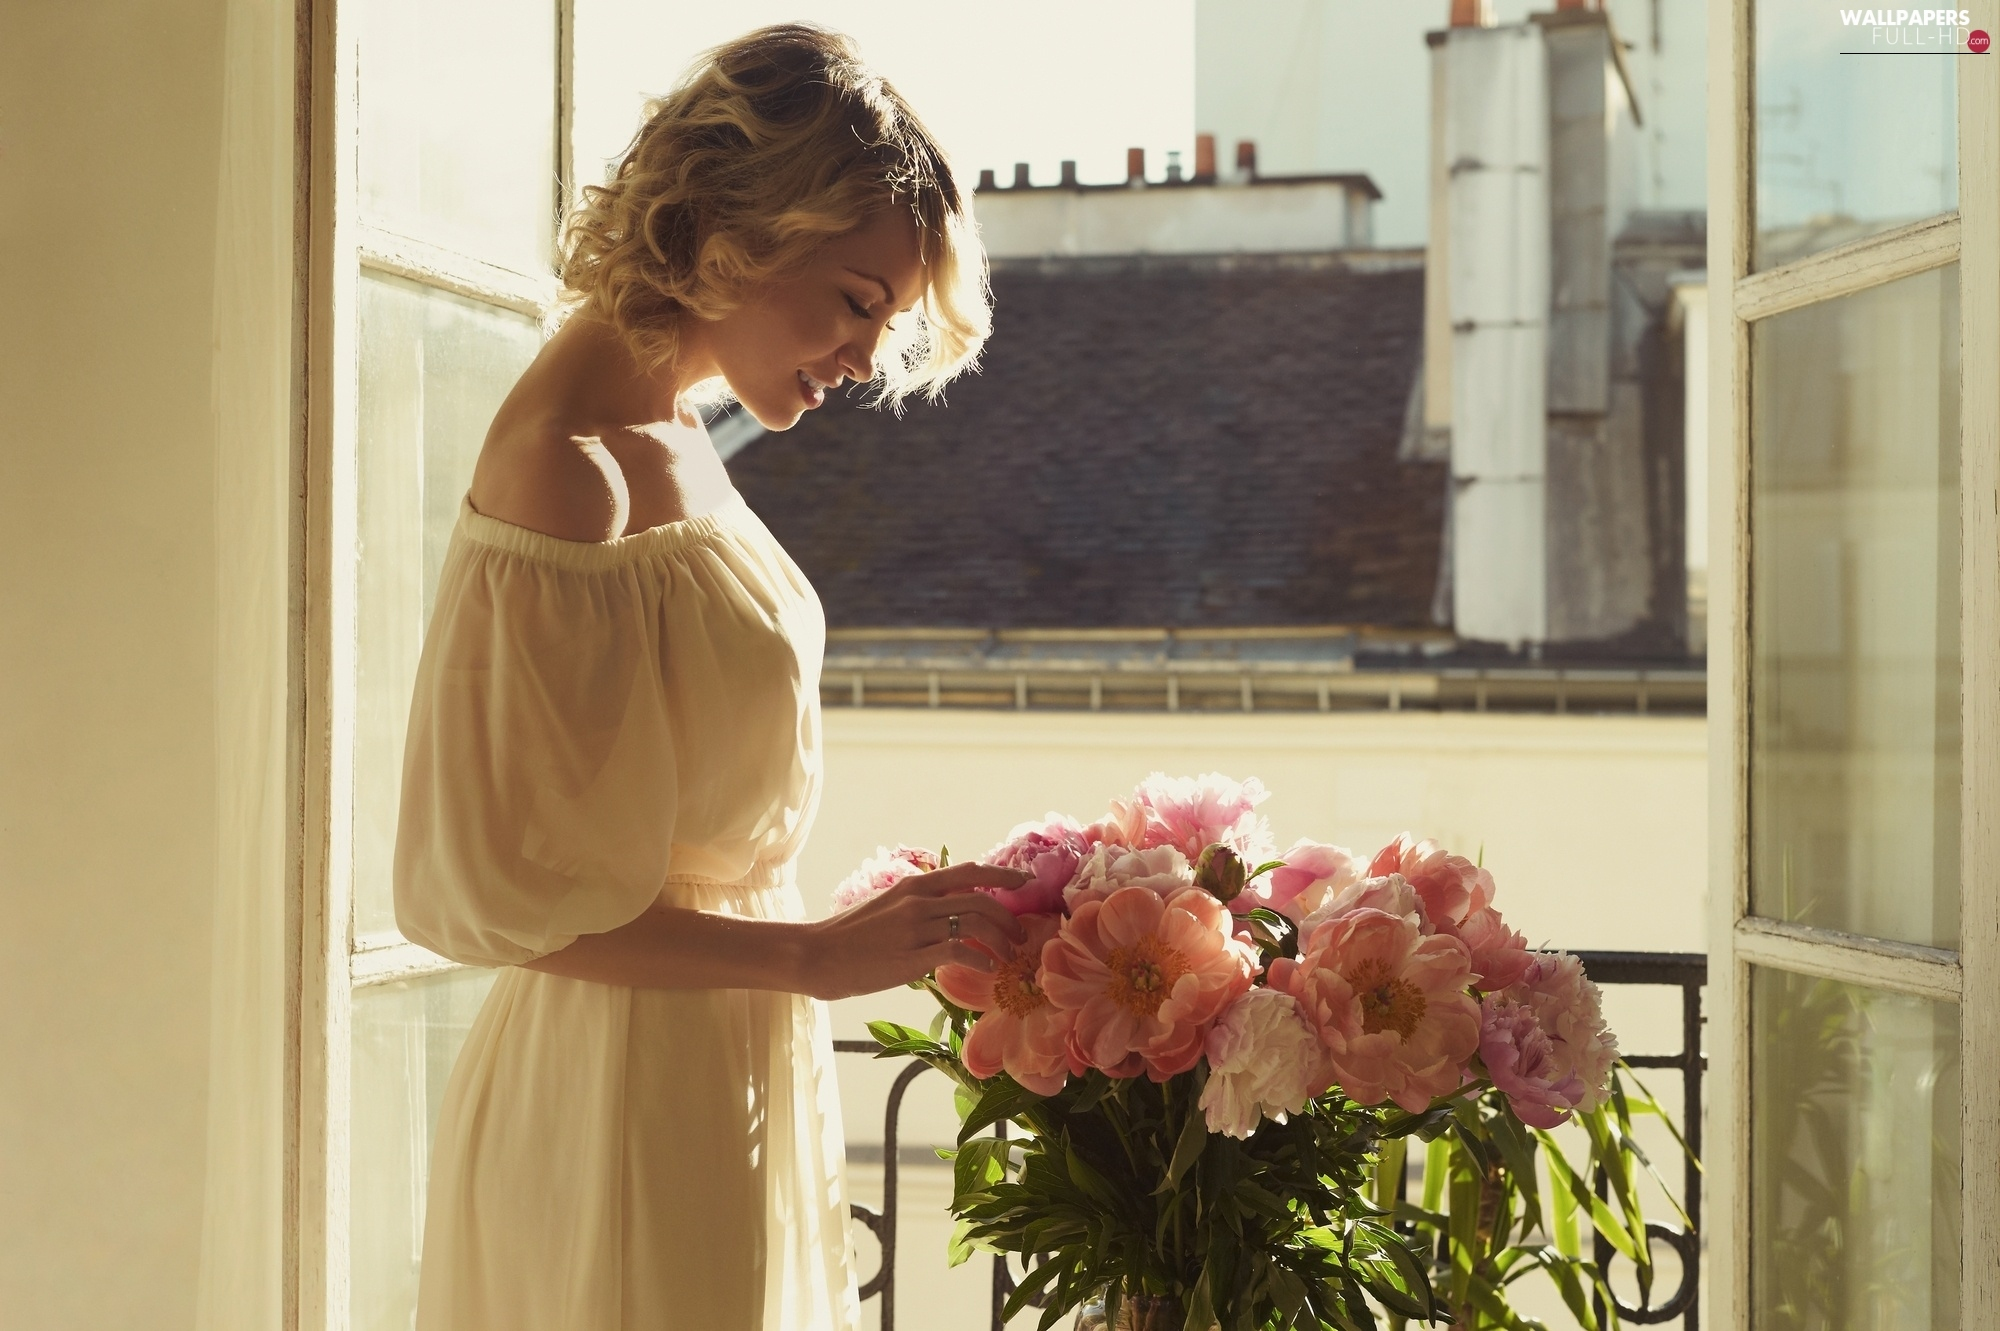 chimney, Flowers, Window, Women, the roof, Blonde, morning